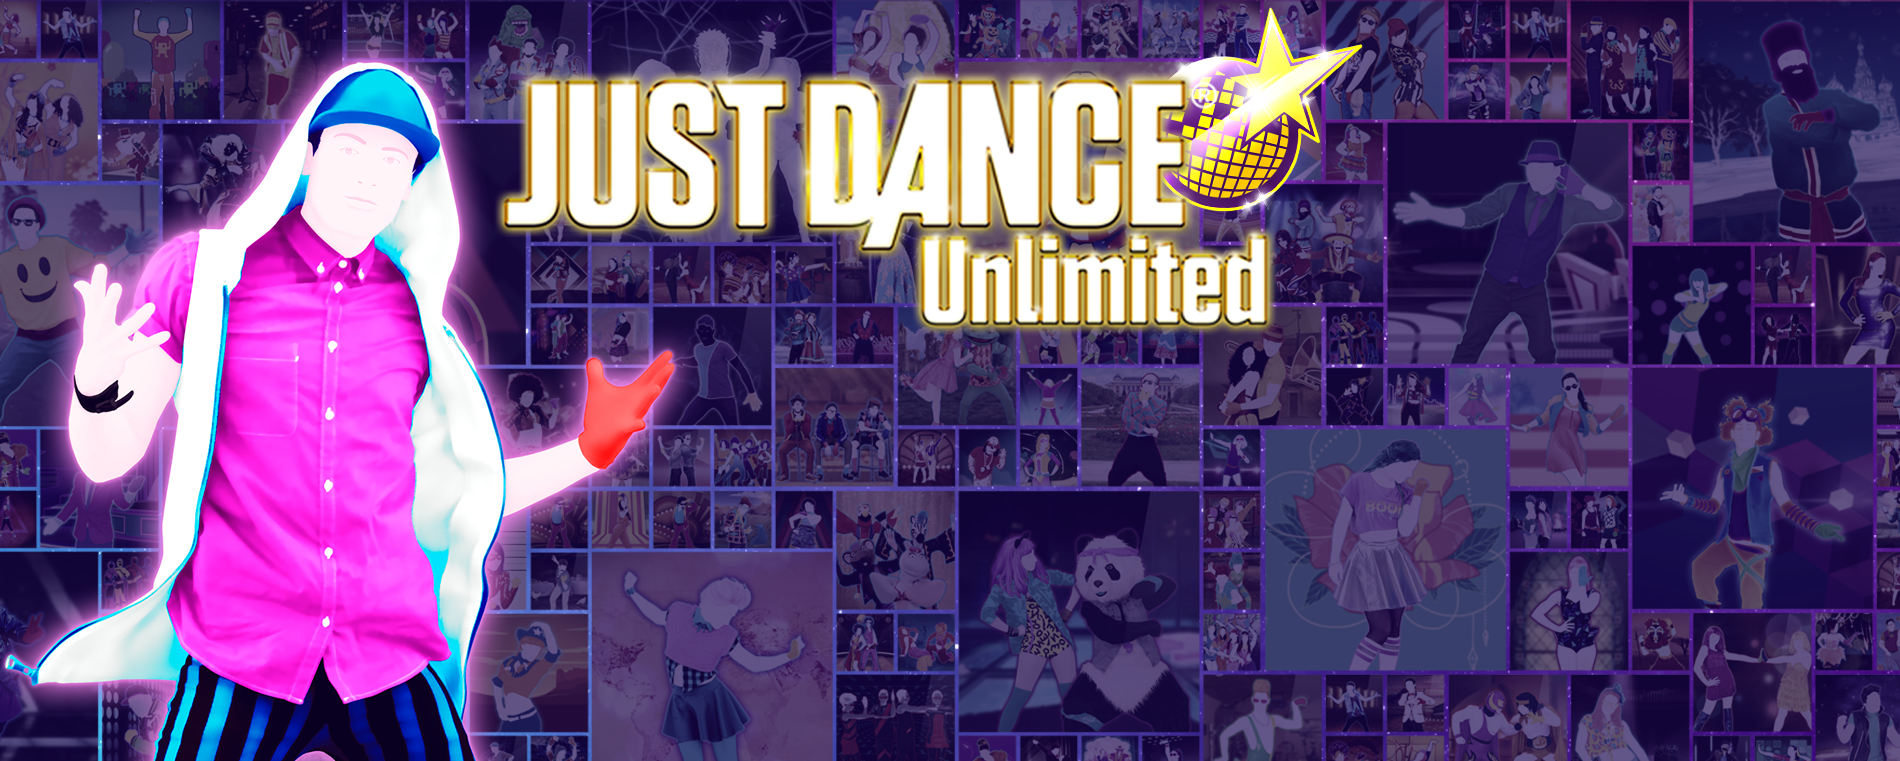 User blog:RyanL181095/Just Dance Unlimited (2018) | Just